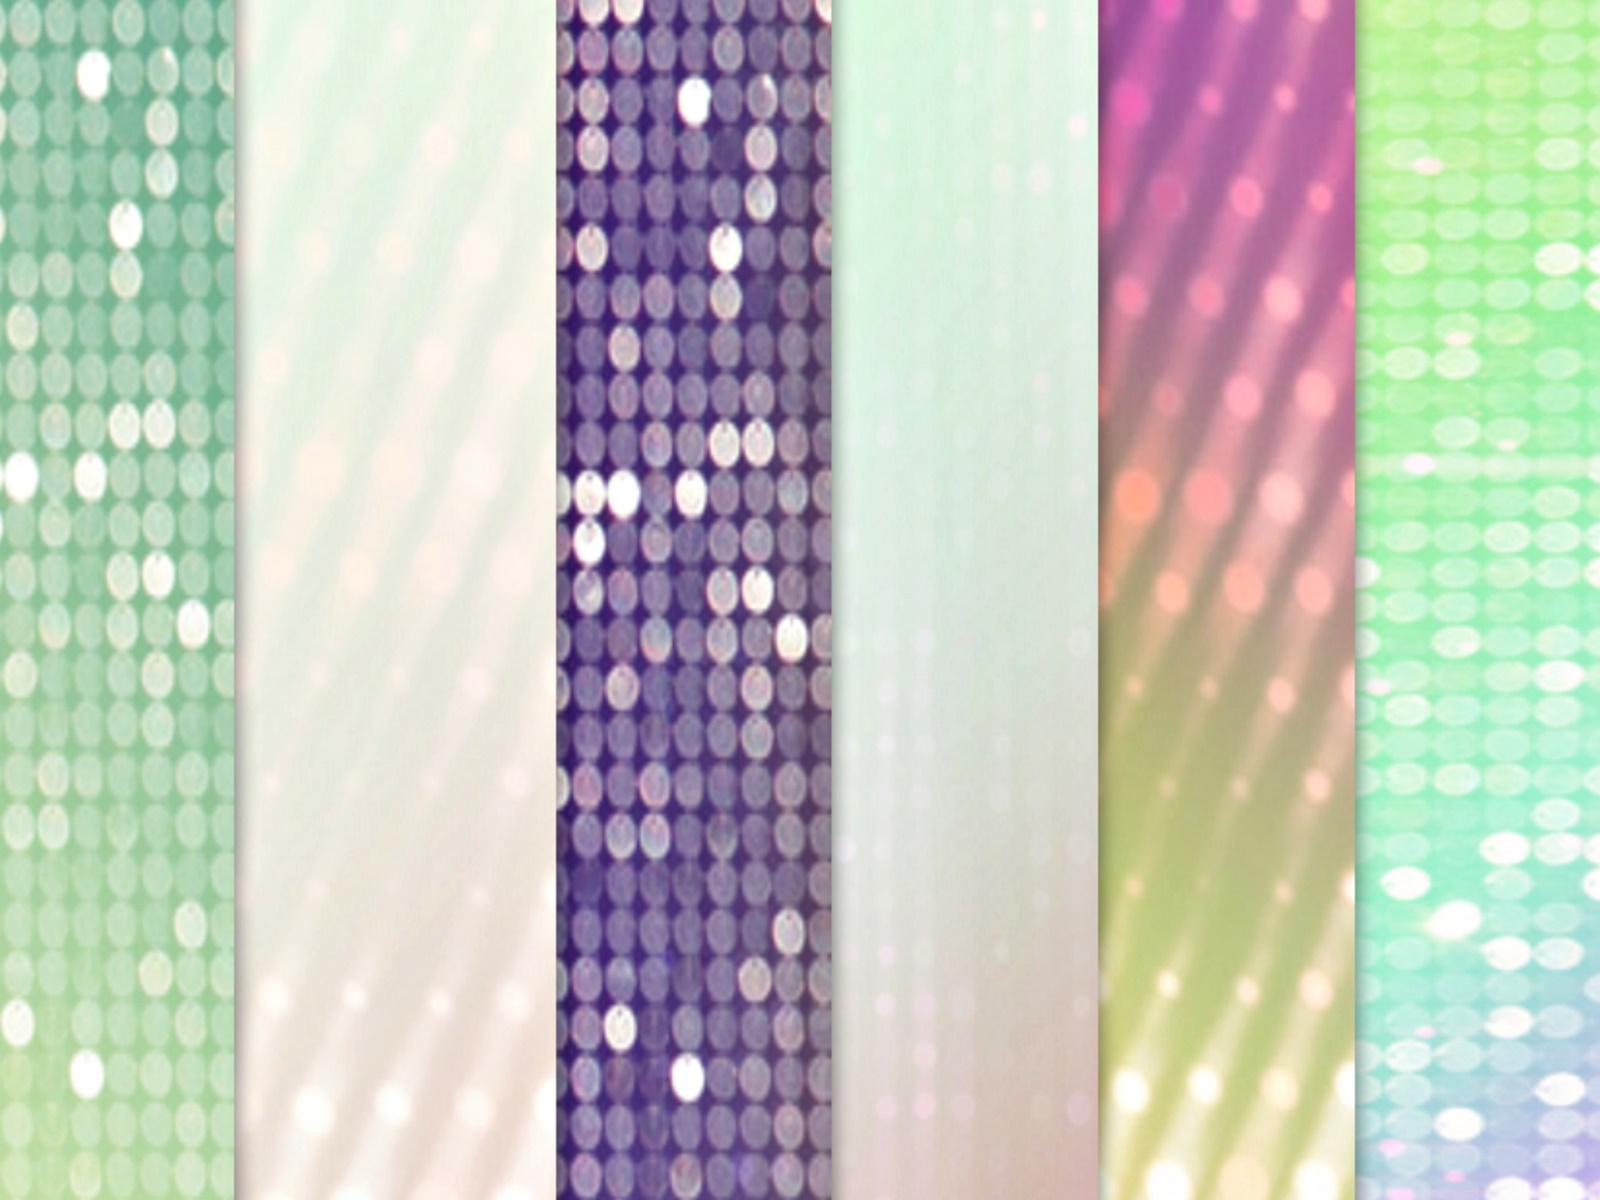 Party Lights Papers - Disco Ball Paper example image 3